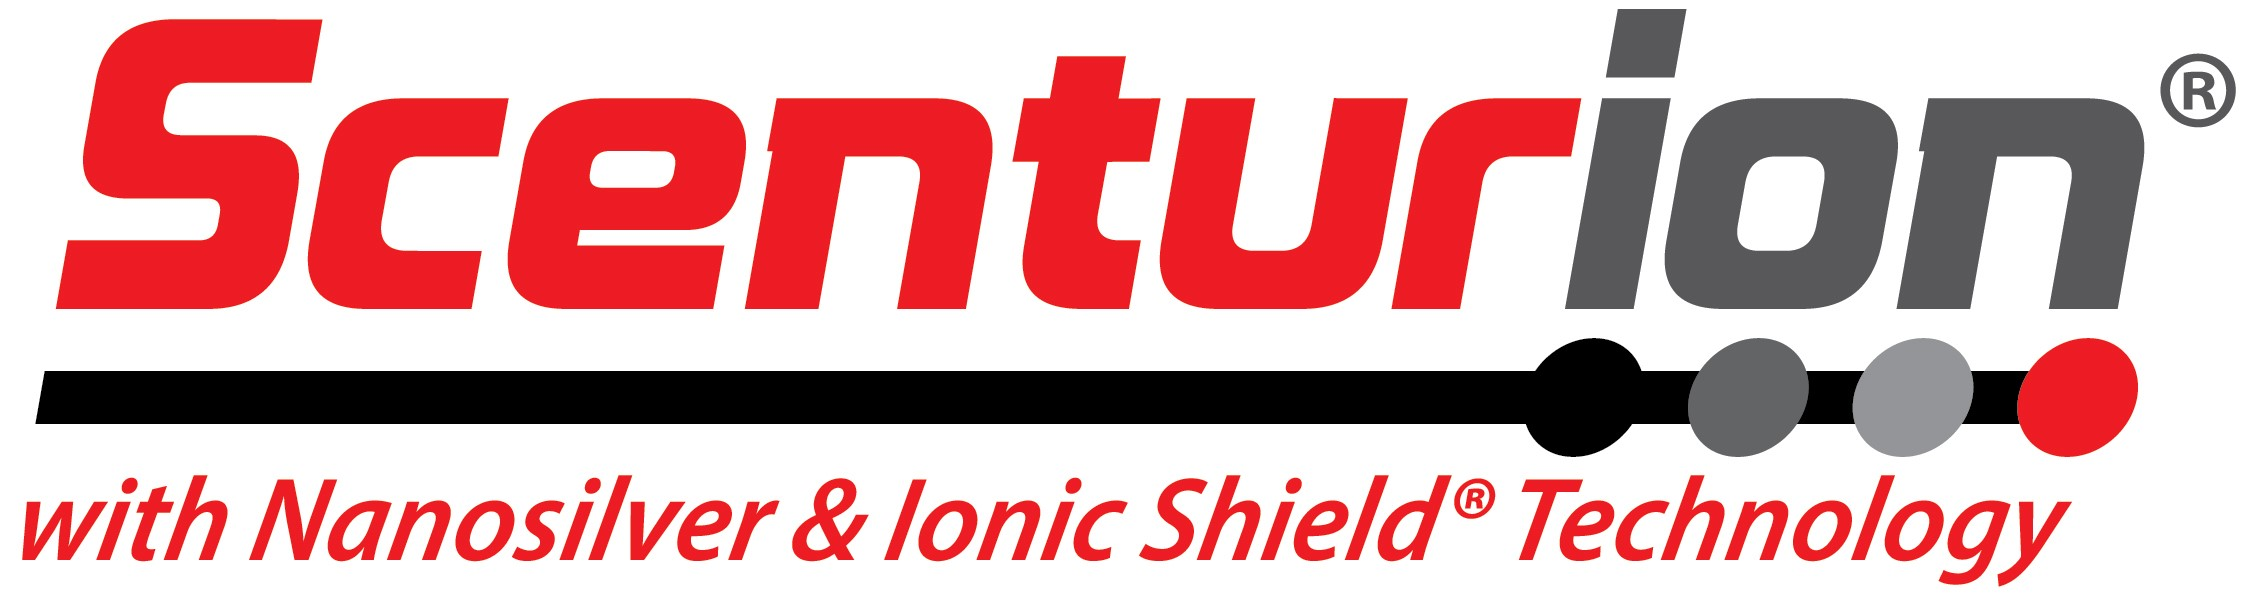 Scenturion/Patriot Technology Inc.